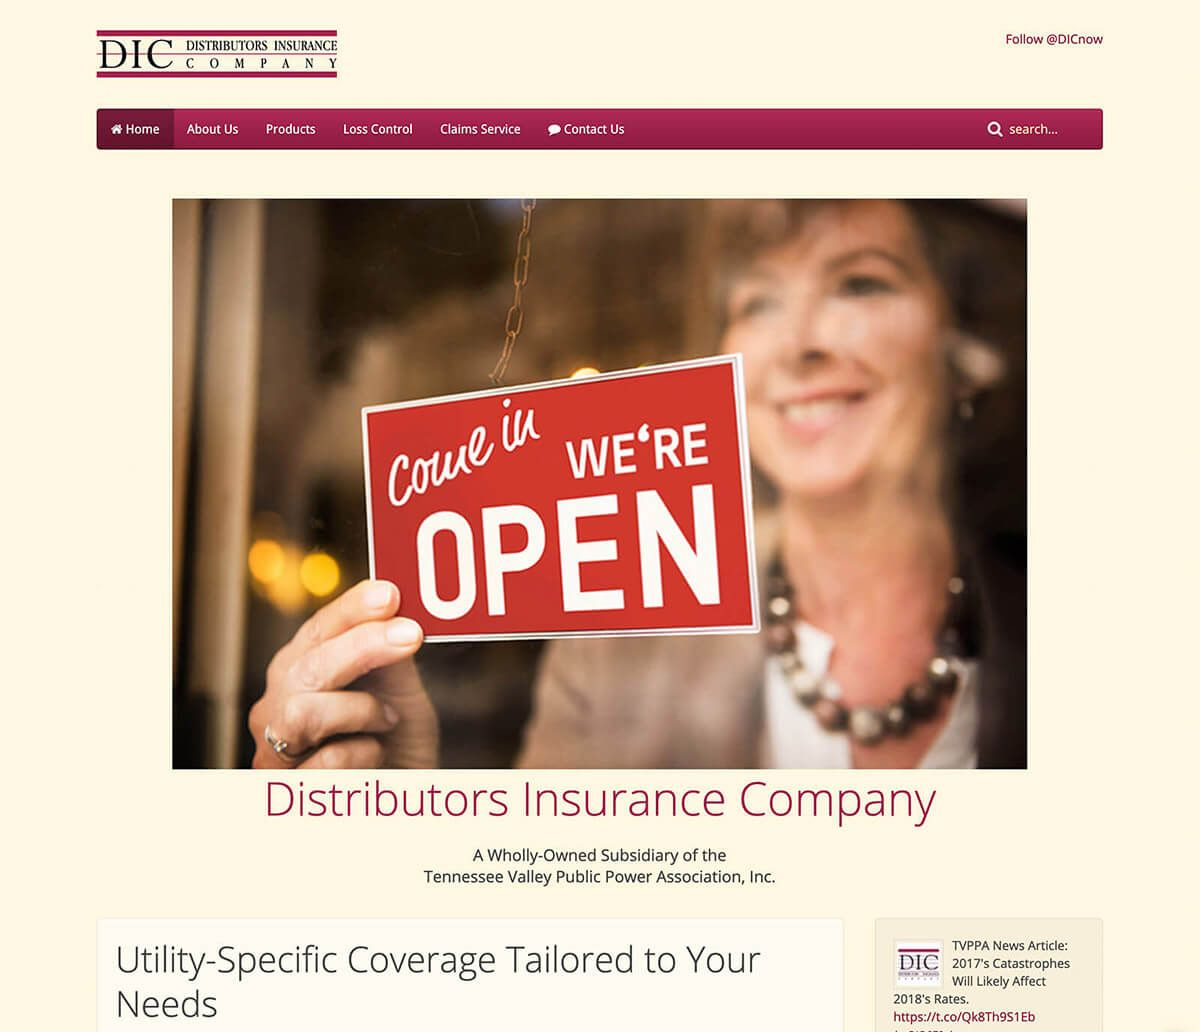 Distributors Insurance Company website by EyeSite Creations